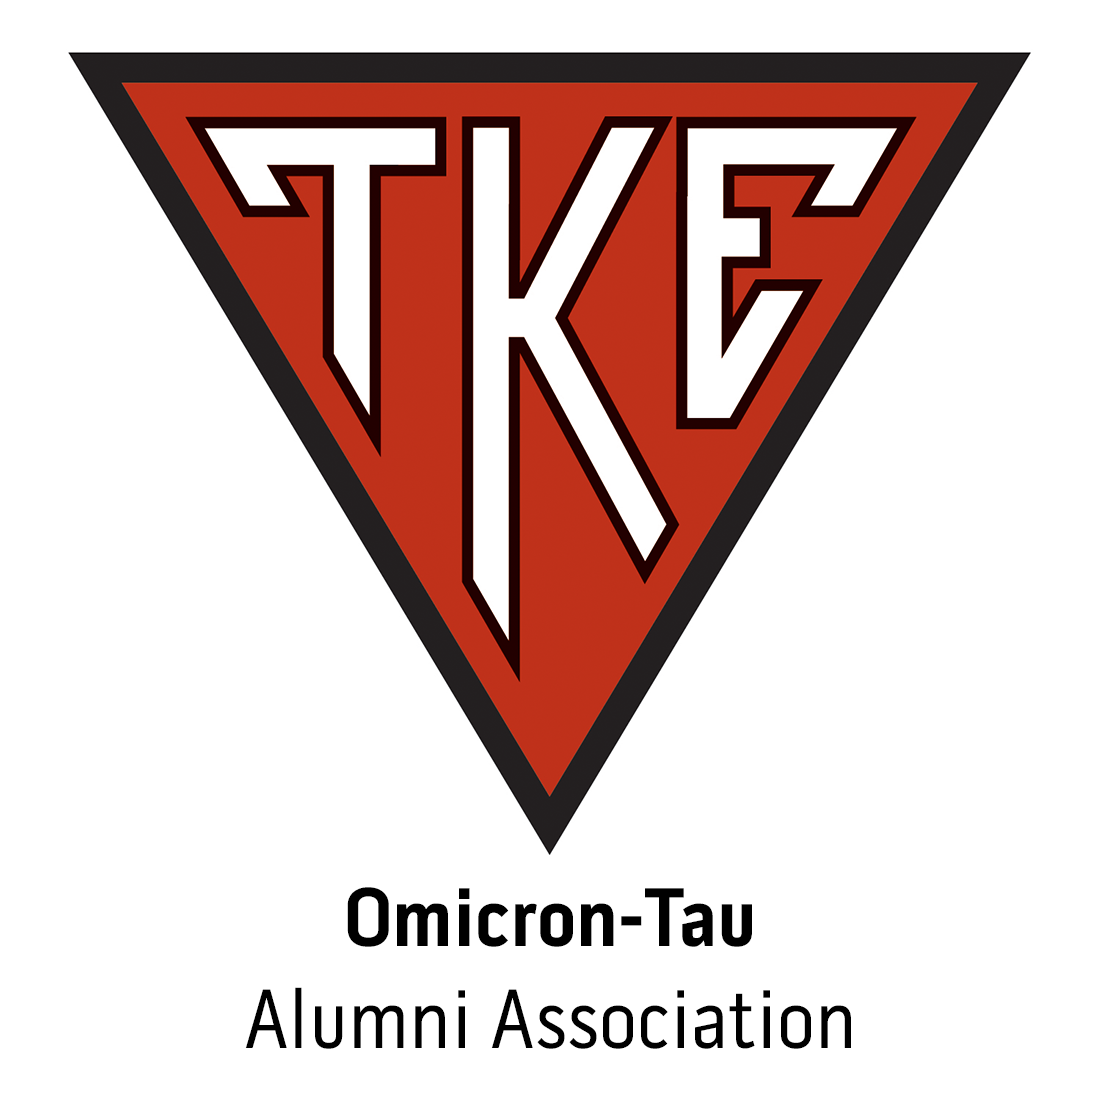 Omicron-Tau Alumni Association at Columbus State University